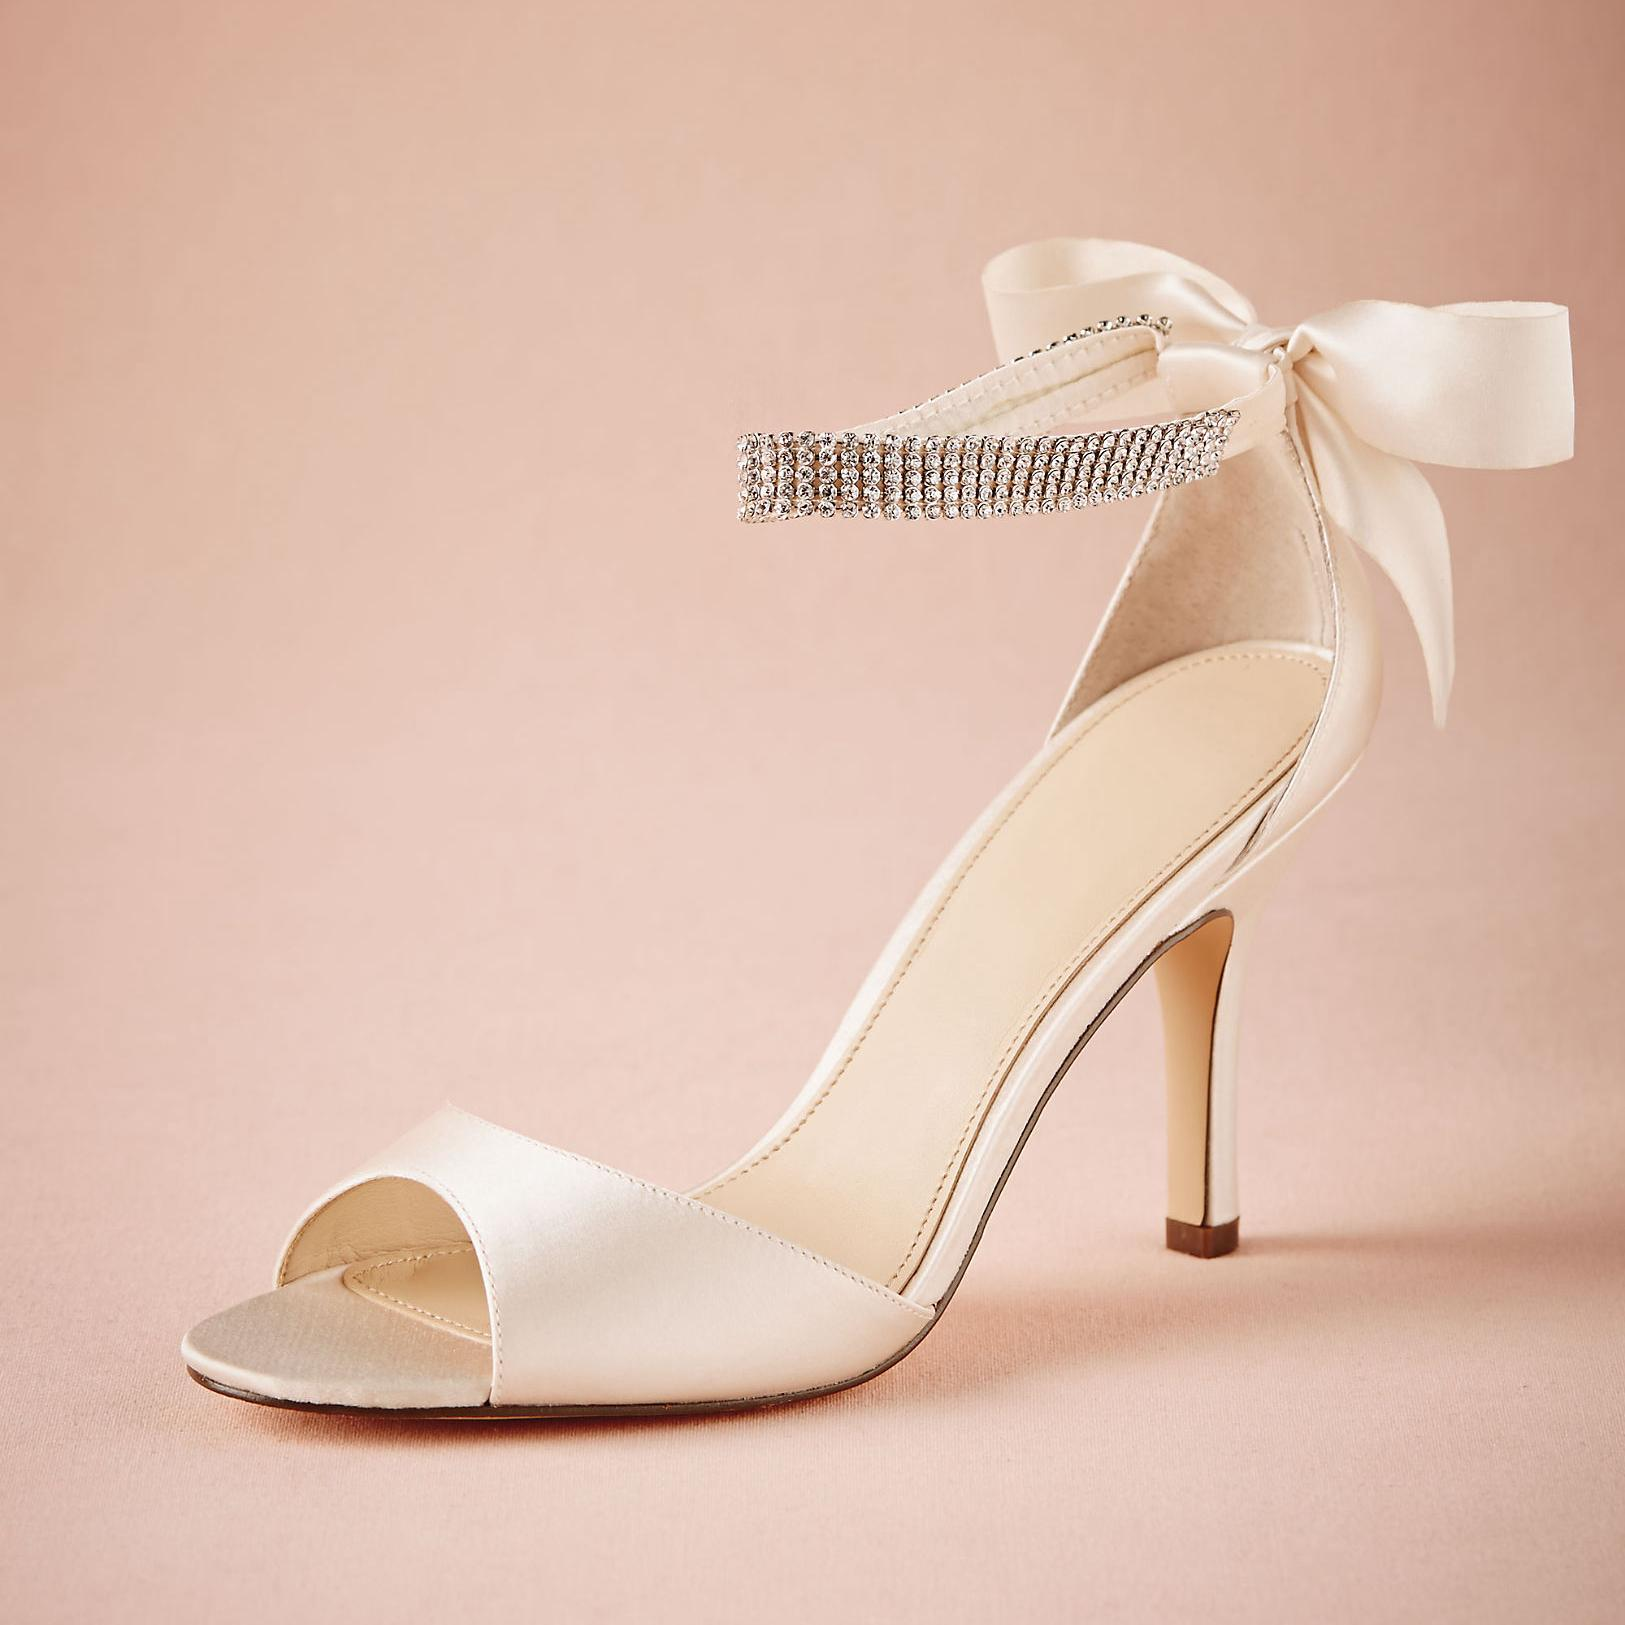 Wedding Shoe Stores Near Me